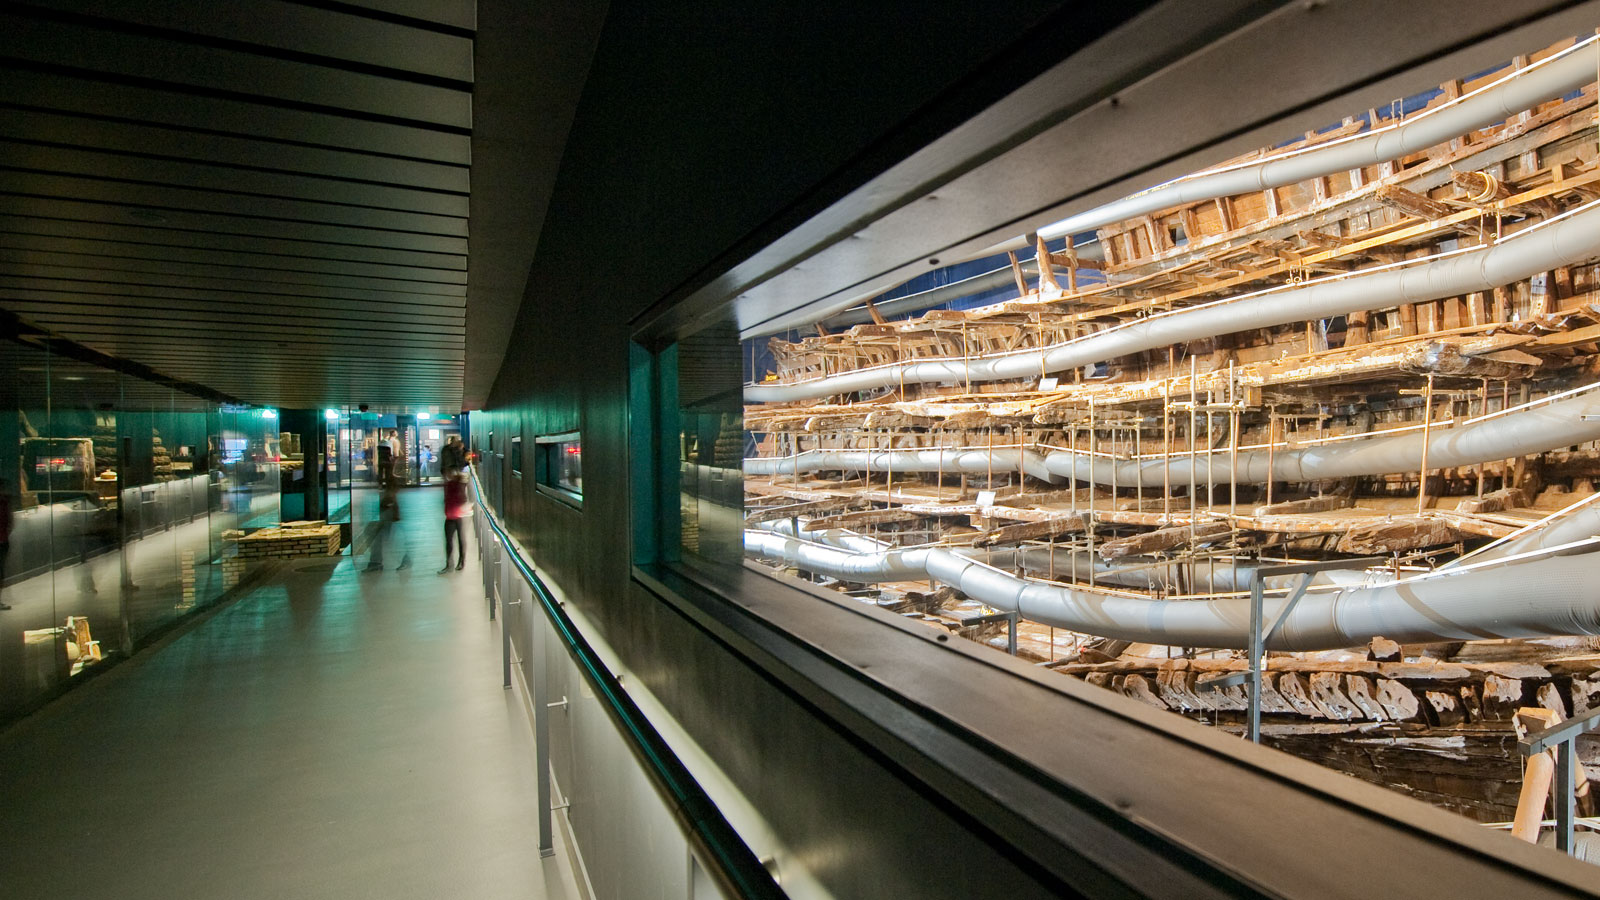 Explore the Mary Rose and her award-winning museum